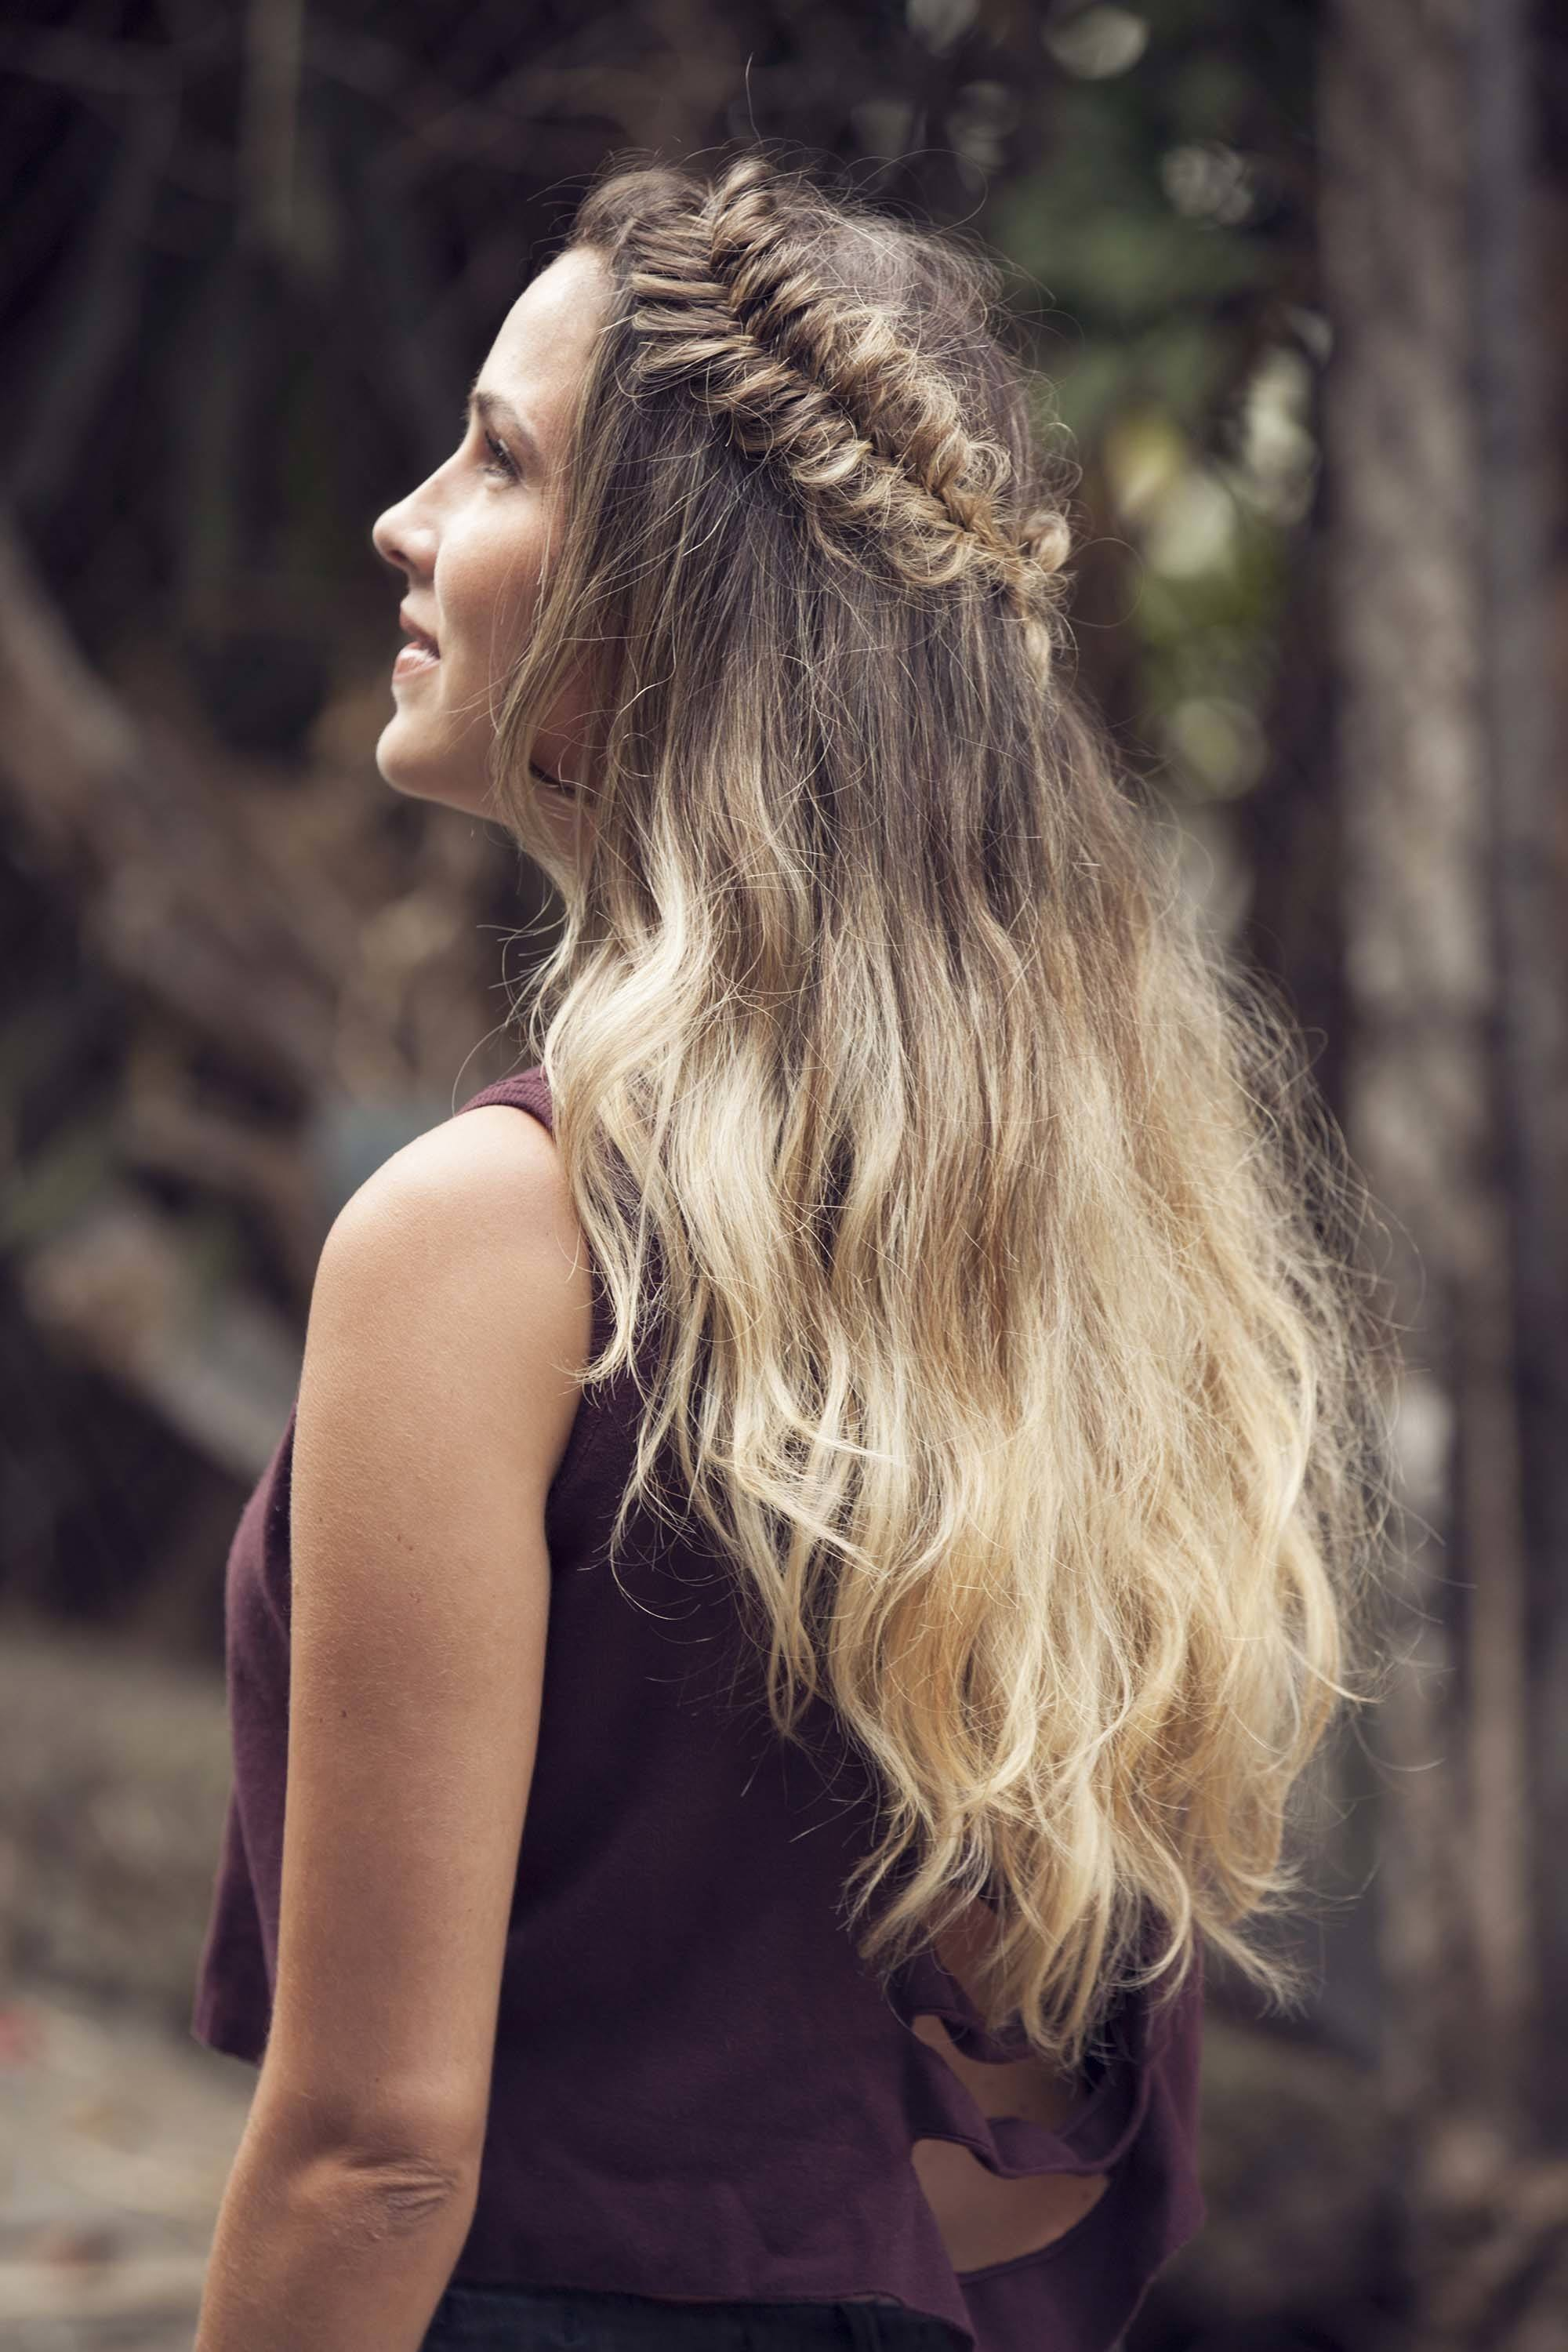 Crown hair: Close up shot of a woman with long dark brown hair with blonde ombre styled into a messy half-up, half-down crown, wearing a red top and posing outside